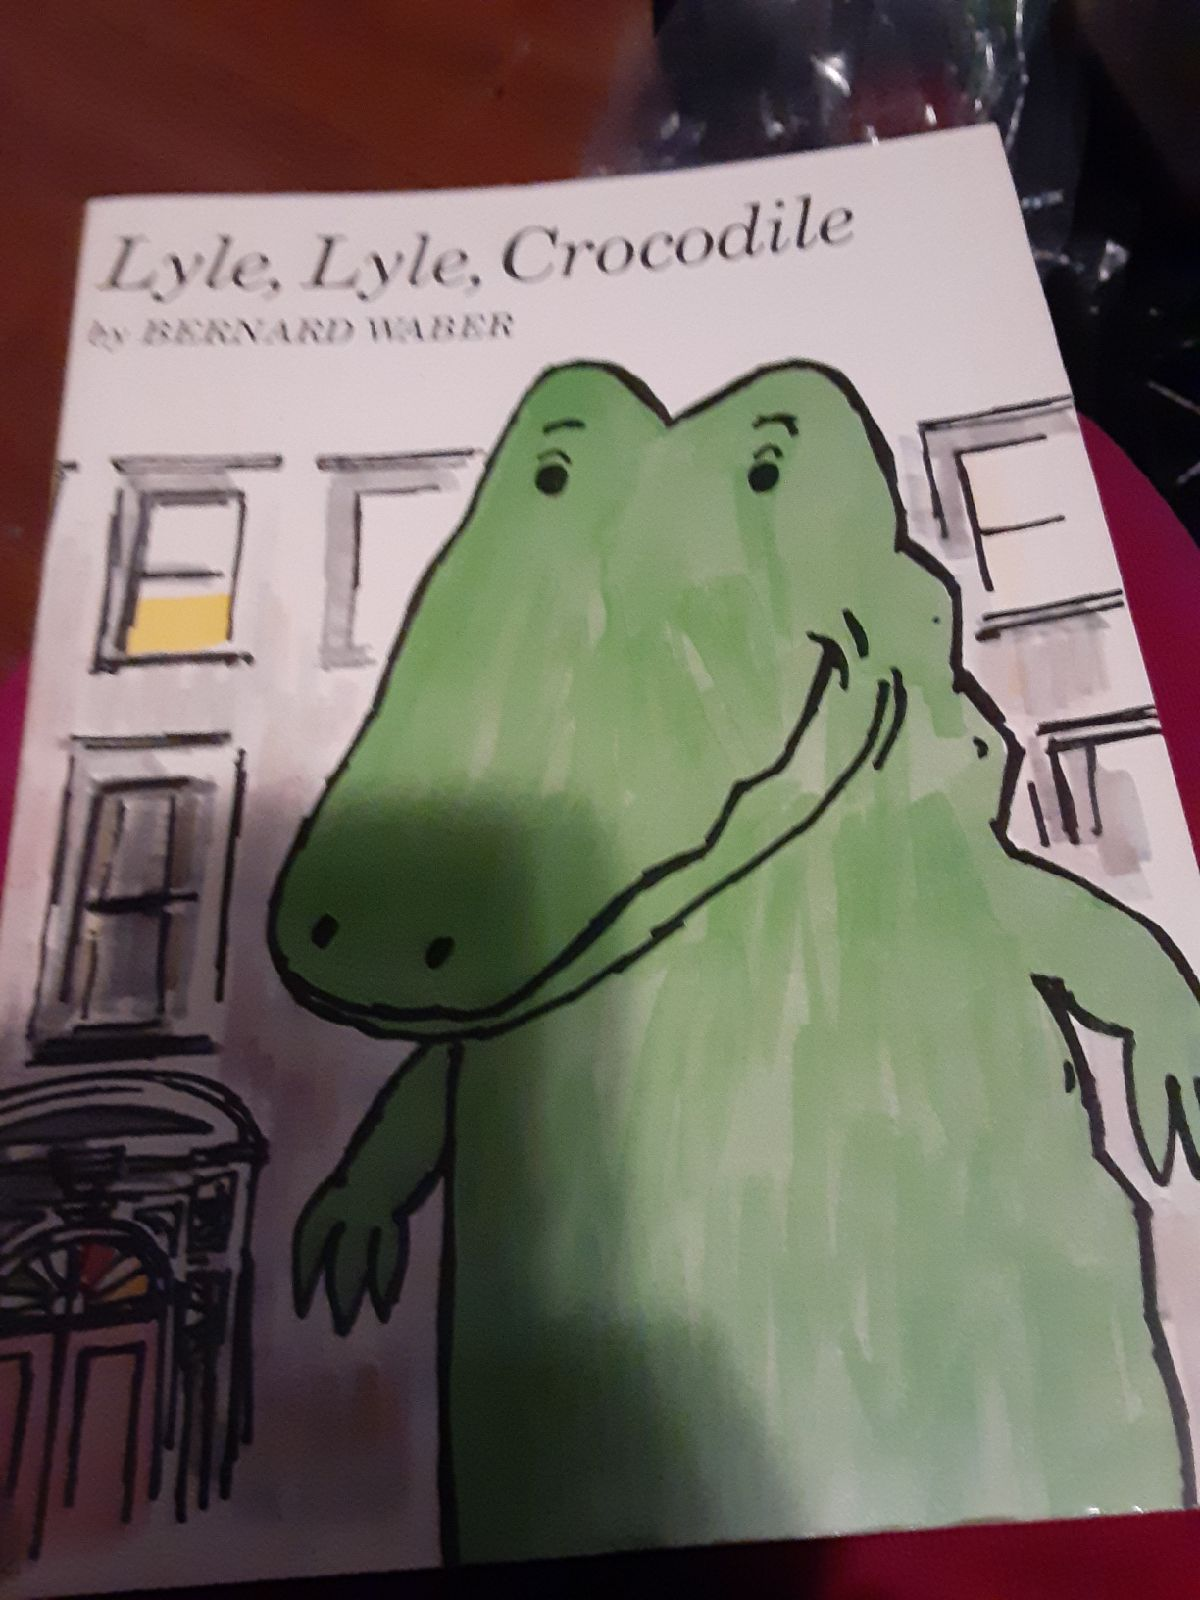 book Lyle Lyle Crocodile by Bernard Wabe